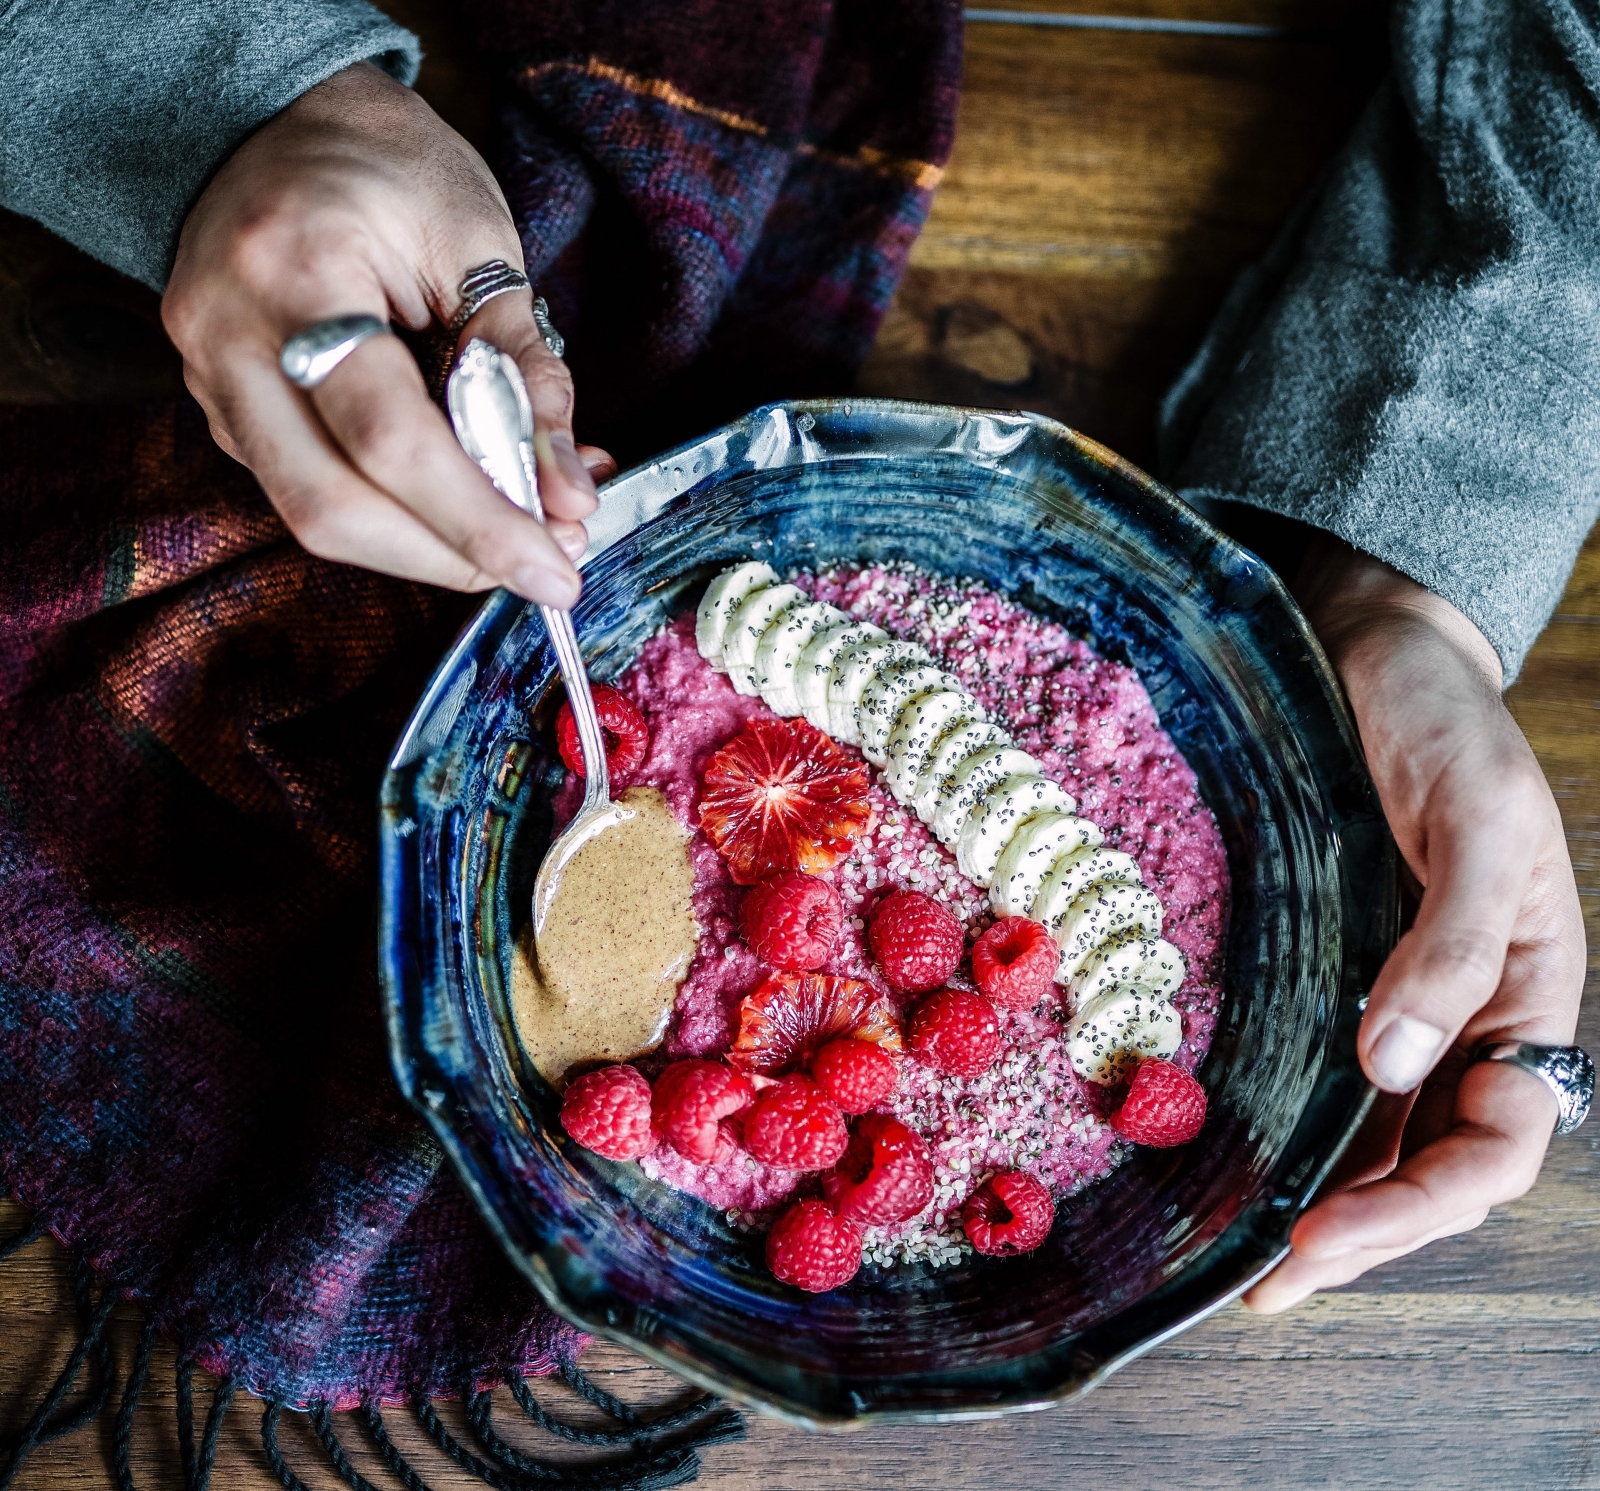 Veganuary: These are the biggest health mistakes people make when they go vegan